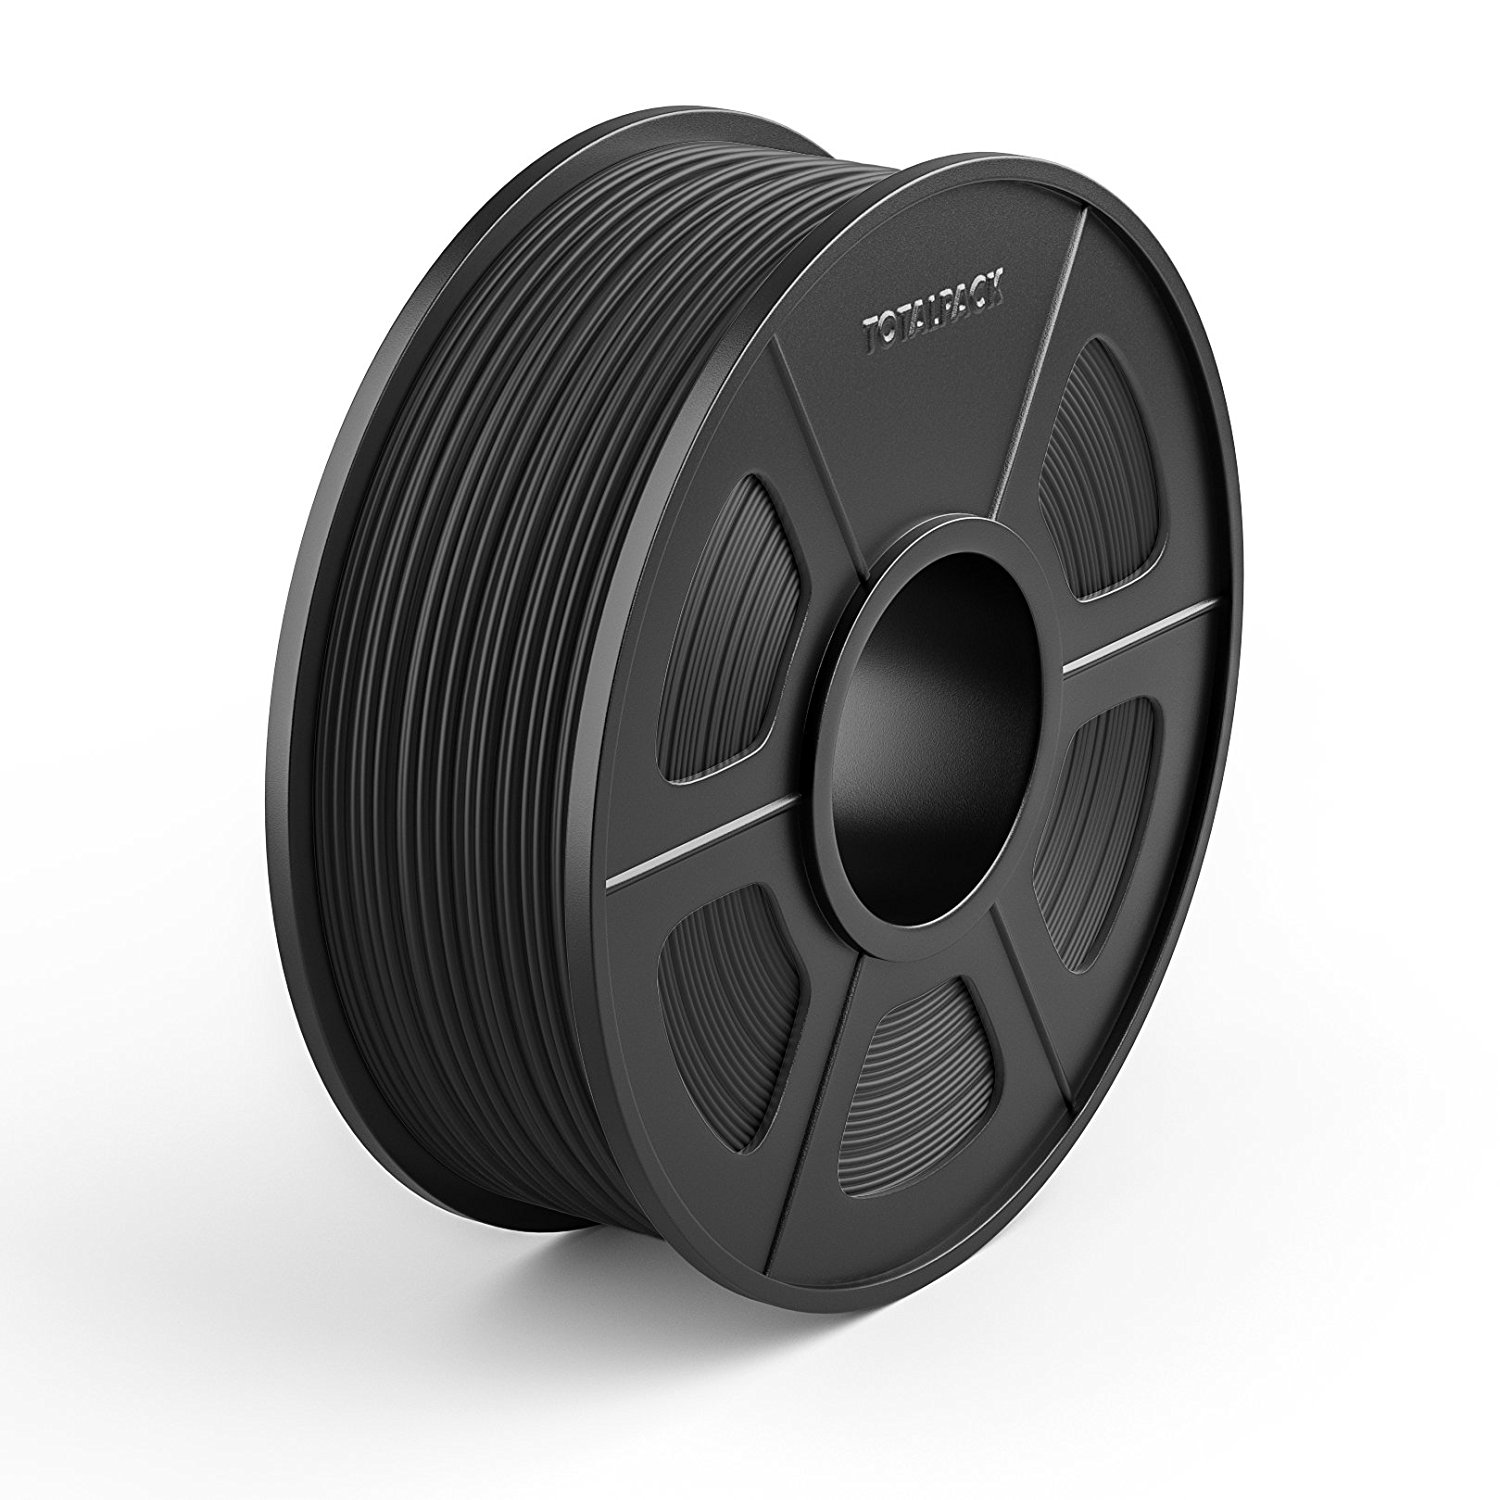 TOTALPACK 3D ABS 1.75mm Printing Filament For 3D Printers -Universal, Low Warp & Easy To Print Thermoplastic Filament, Dimensional Accuracy +/-0.02mm, Perfect For Beginners & Pros –1kg Spool